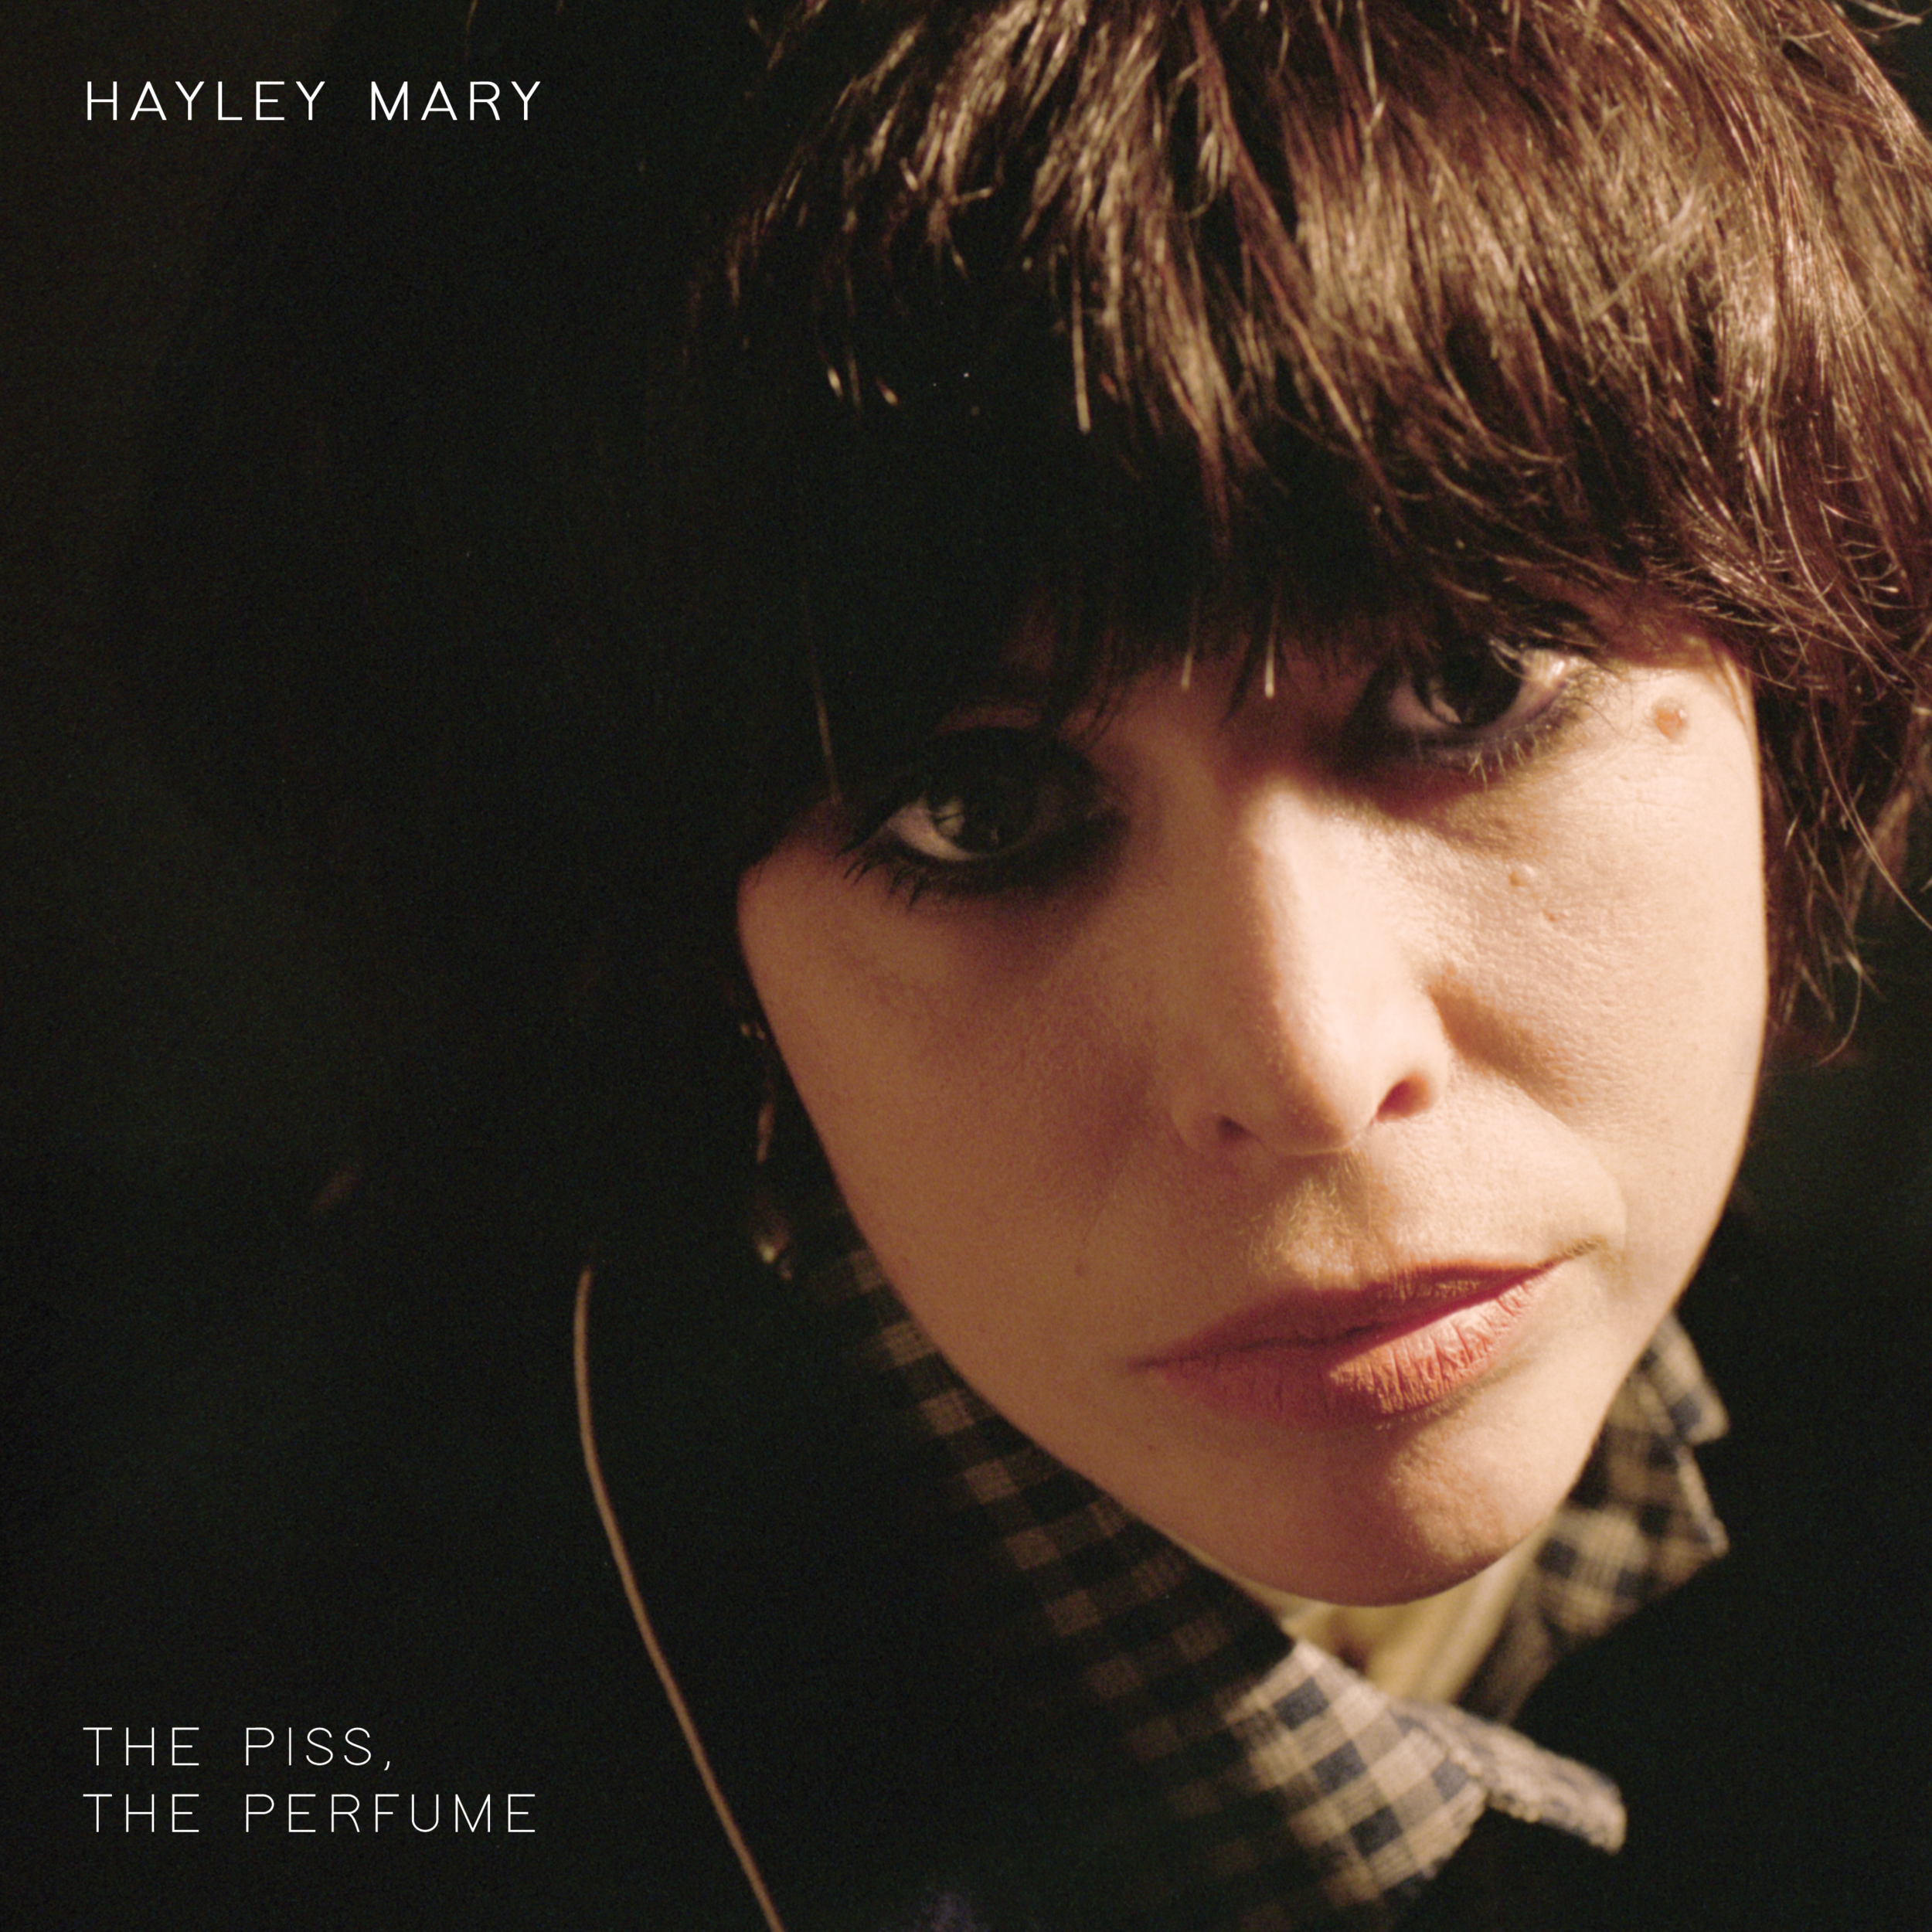 HAYLEY MARY - New single 'The Piss, The Perfume' available now.